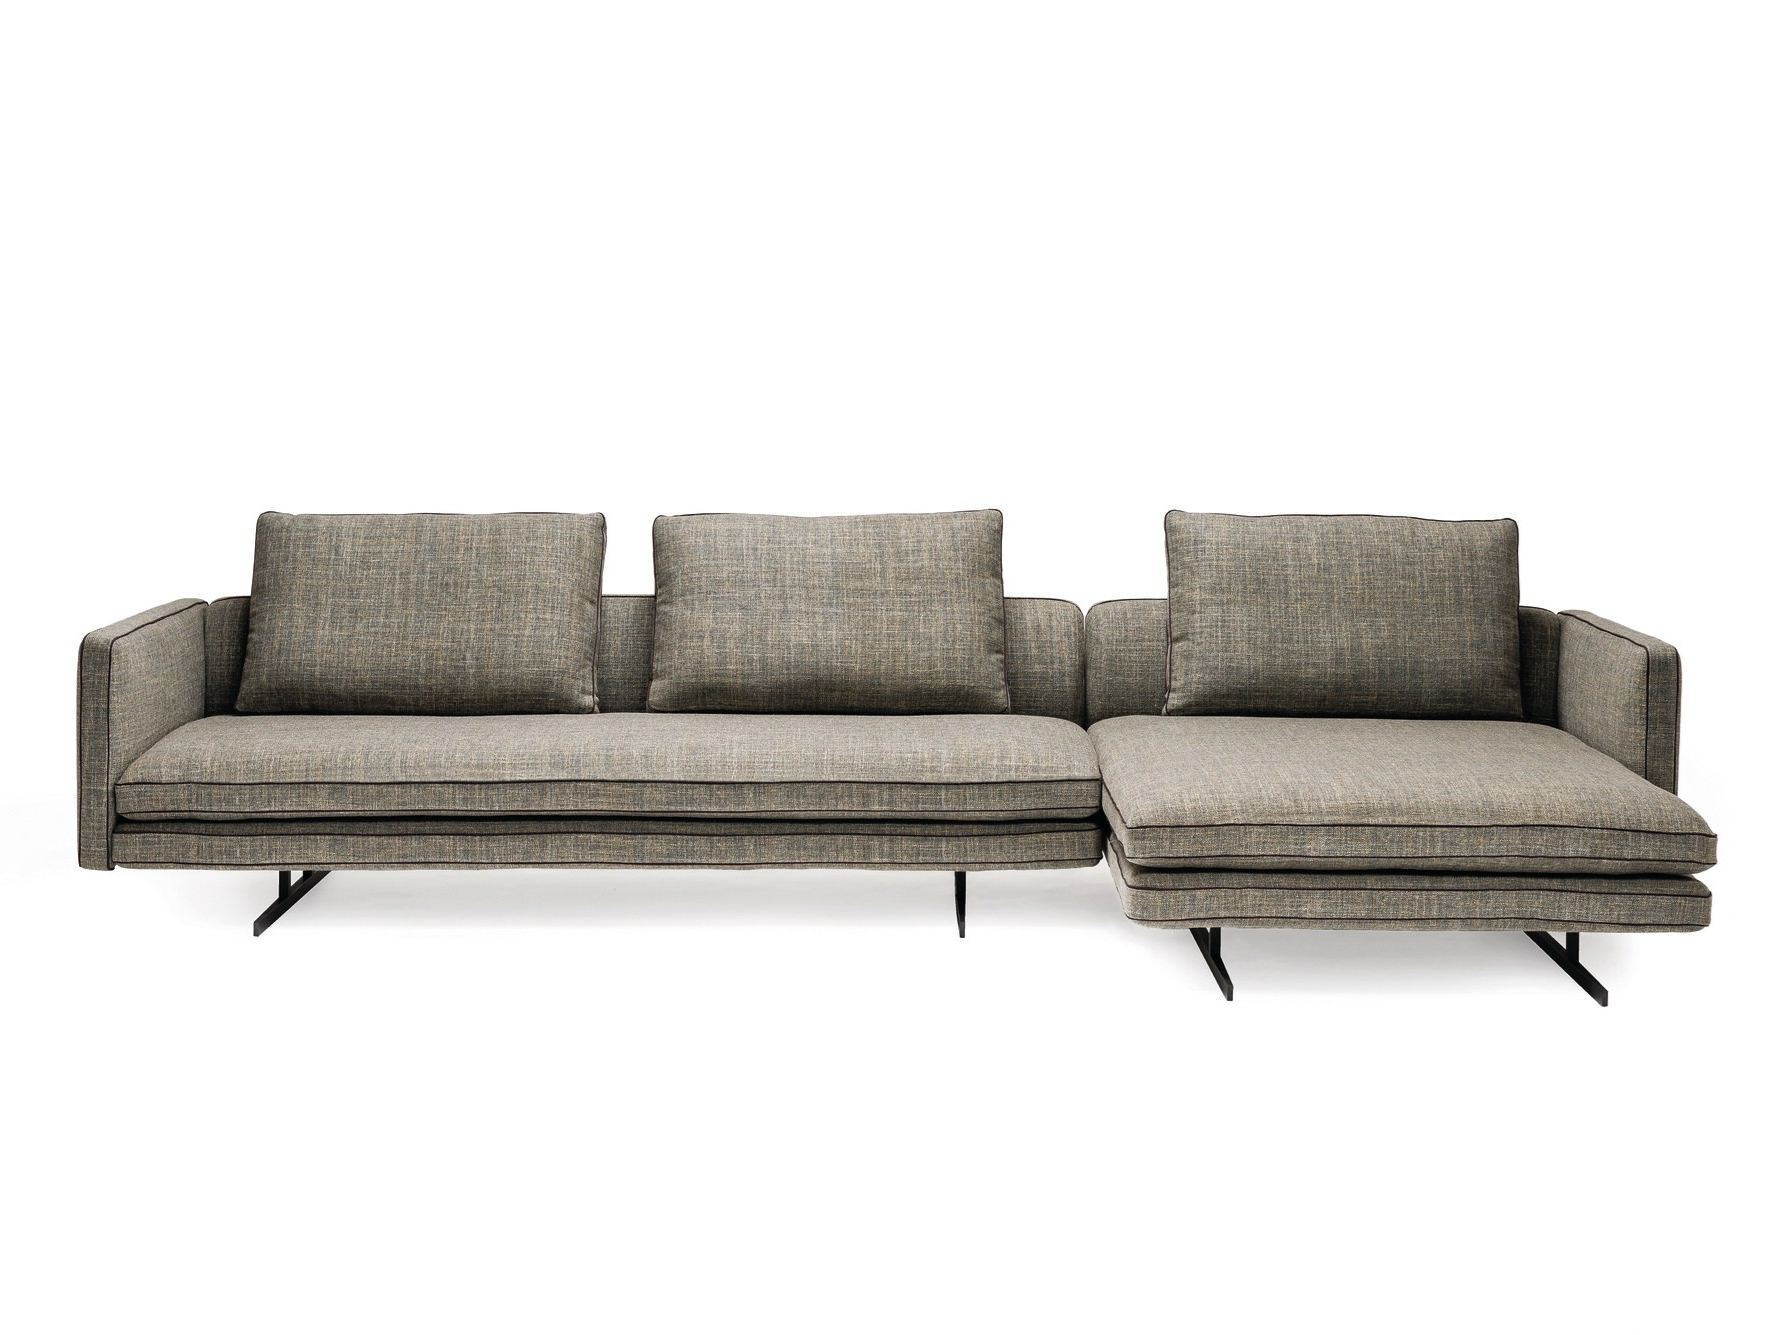 Fabric sofa with chaise longue moss by arketipo design for Sofas con chaise longue